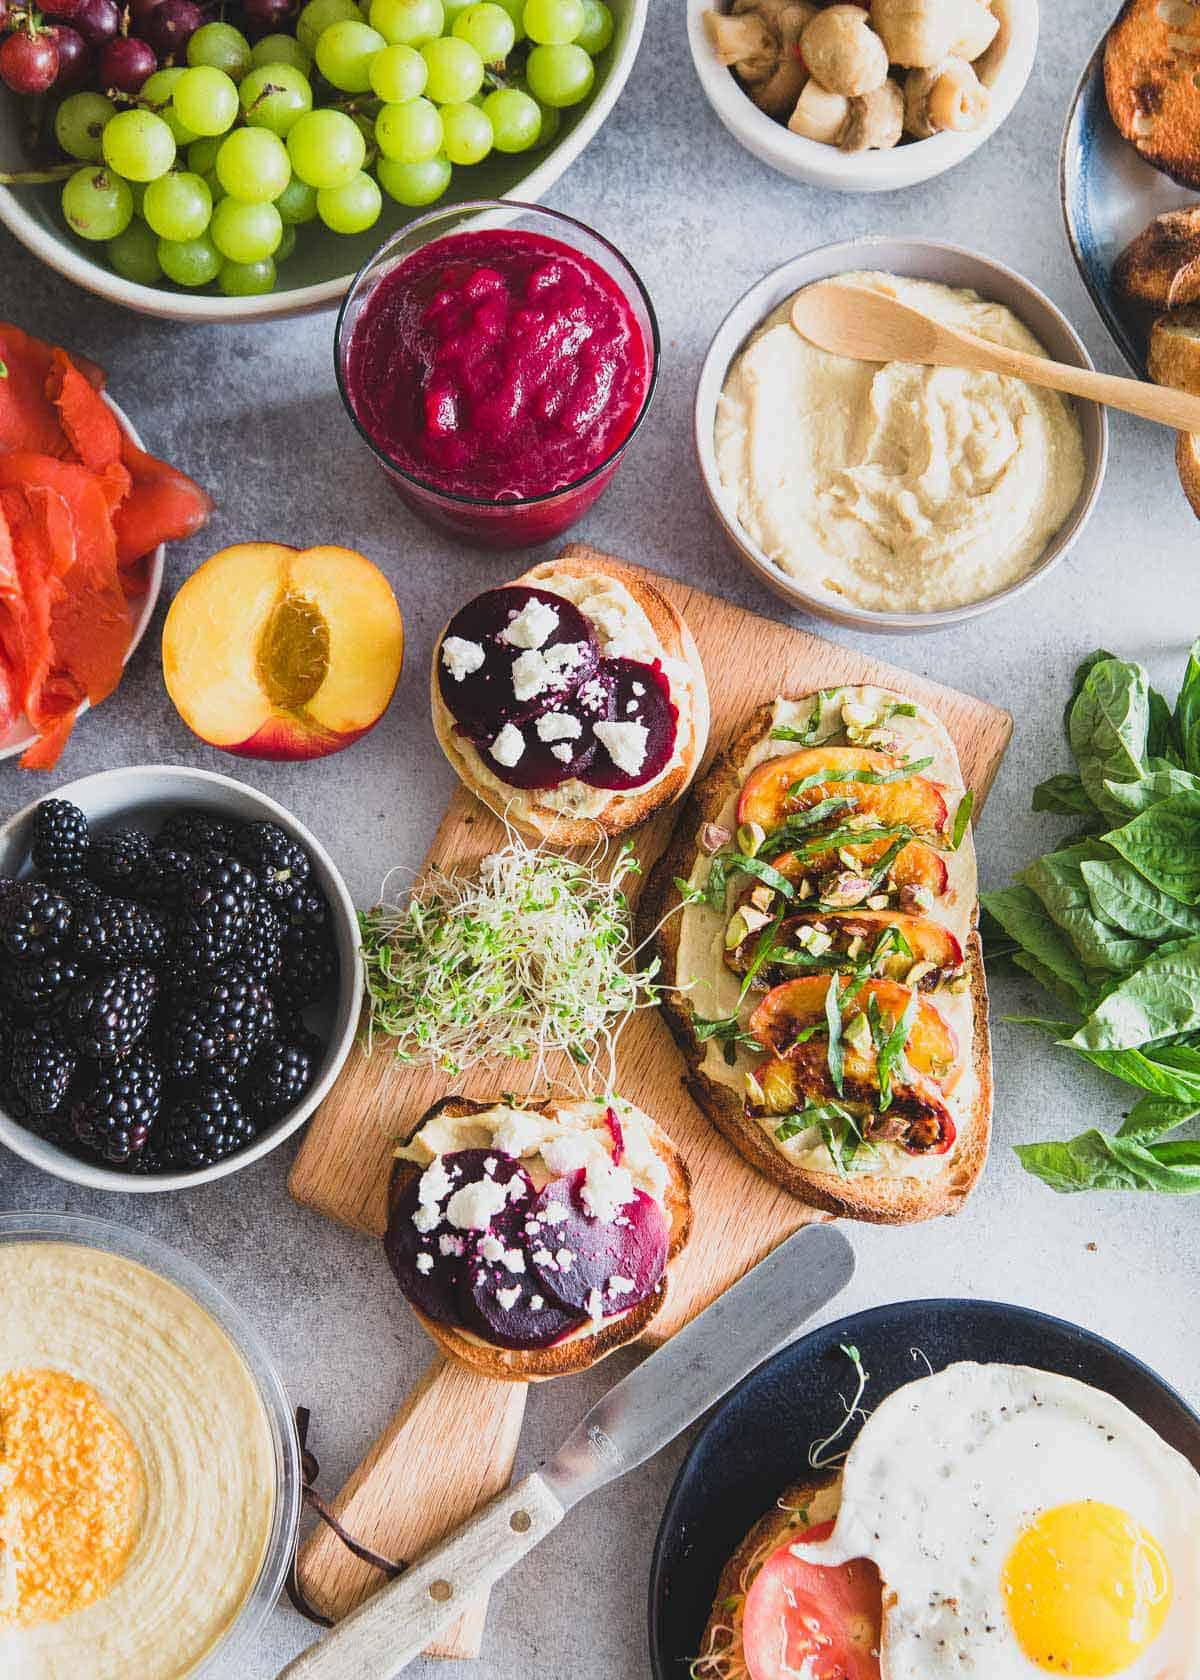 A healthy hummus toast brunch spread complete with a simple beet smoothie recipe to start the day.